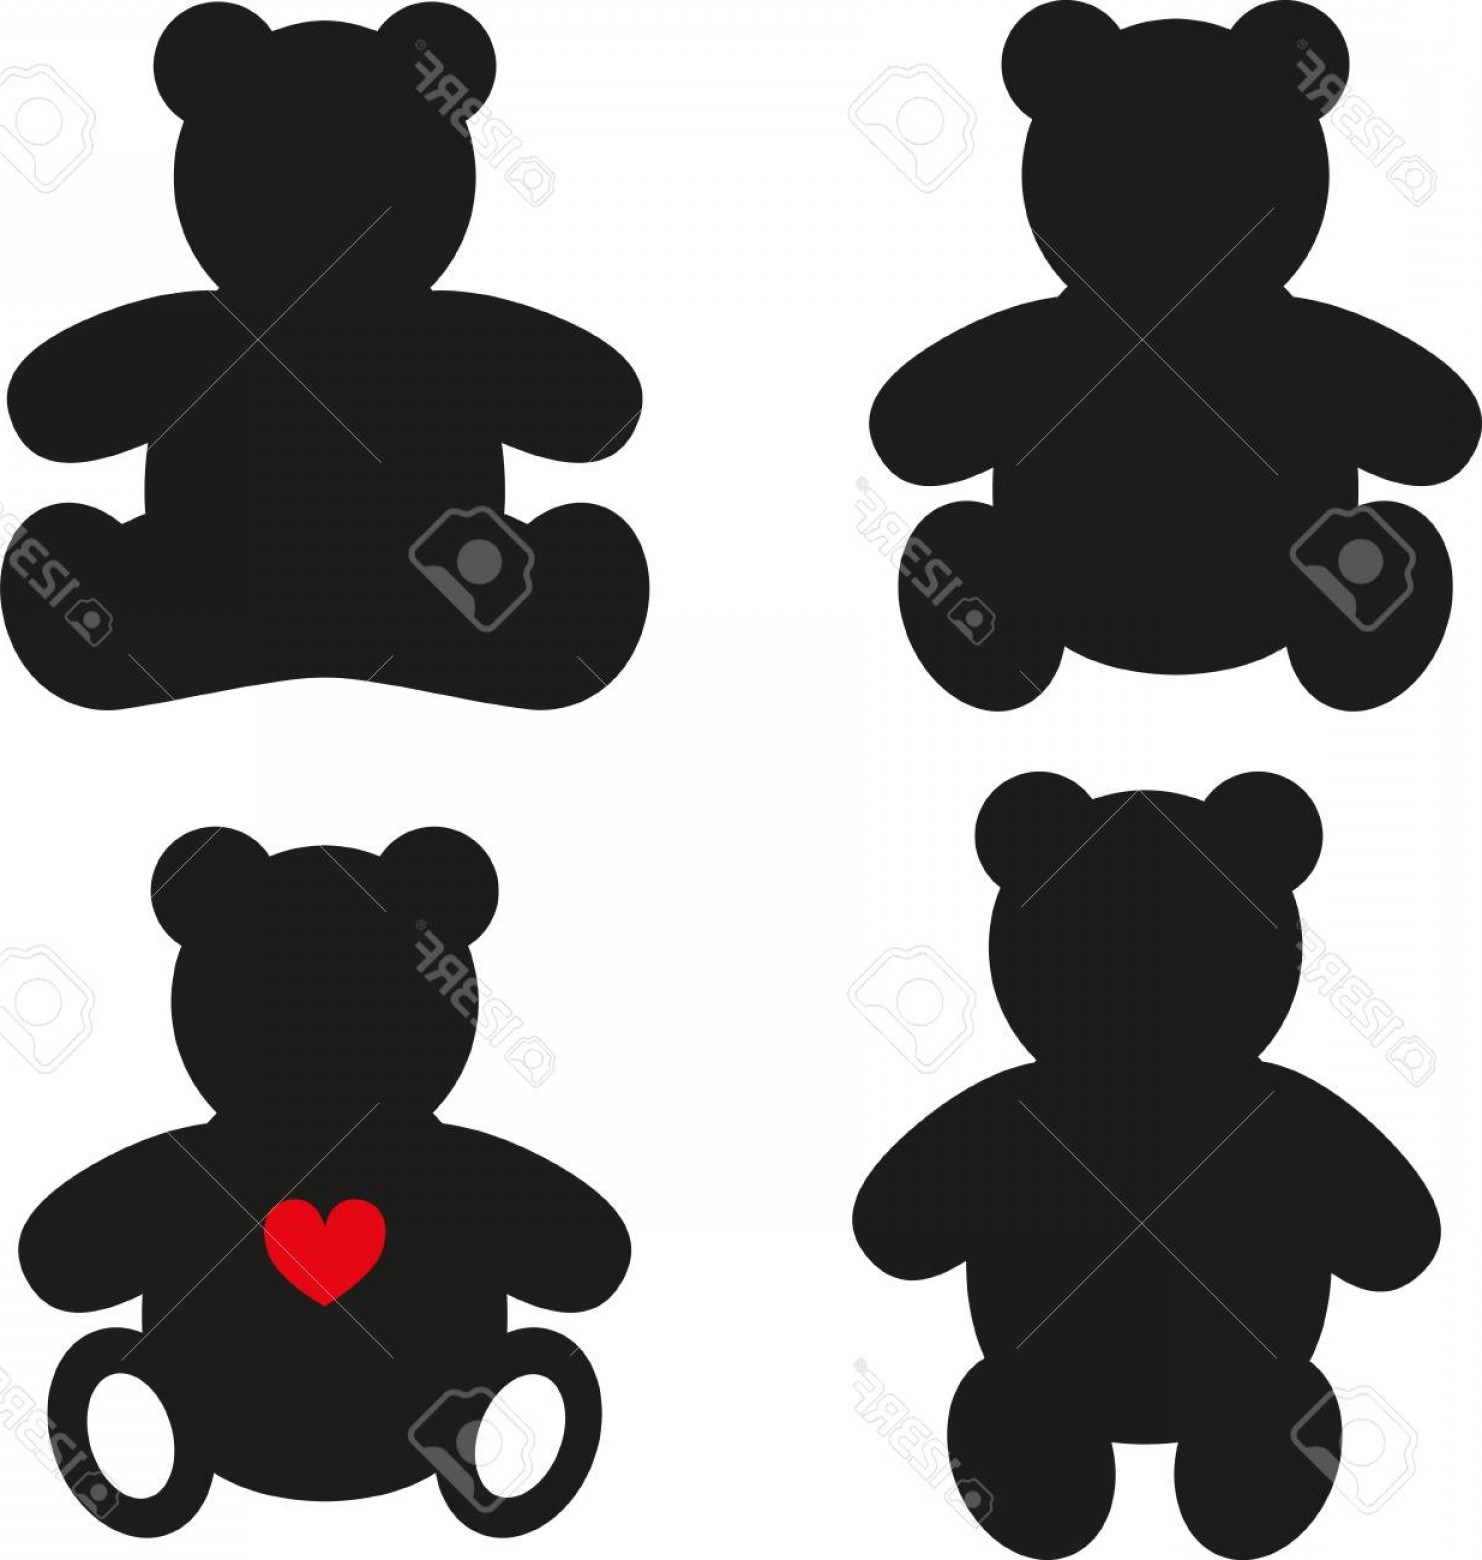 Photostock Vector Simple Silhouettes Of Teddy Bear Vector.